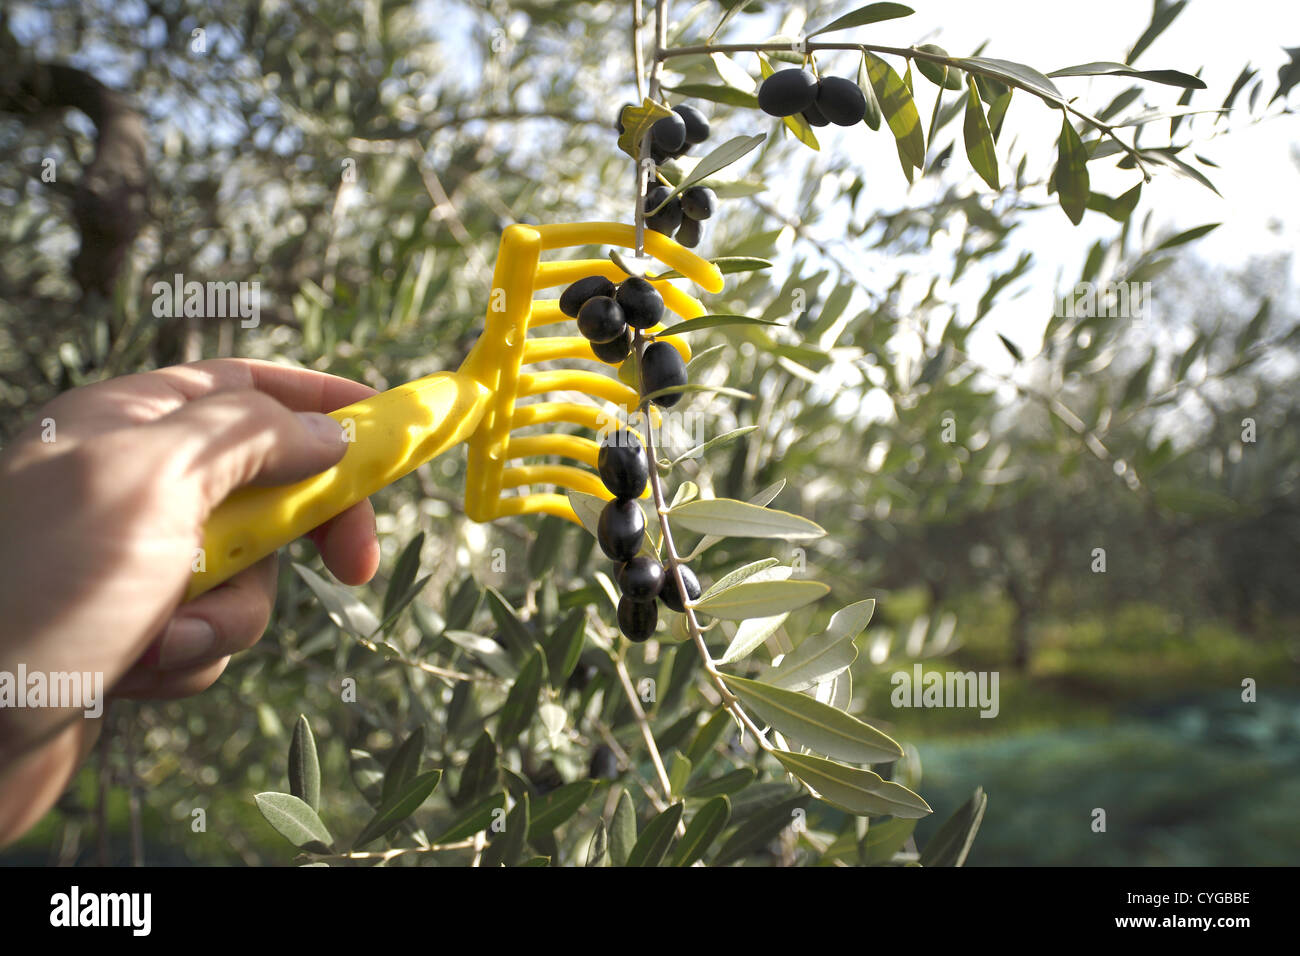 Olives being harvested using a comb in the Abruzzo region of Italy. - Stock Image